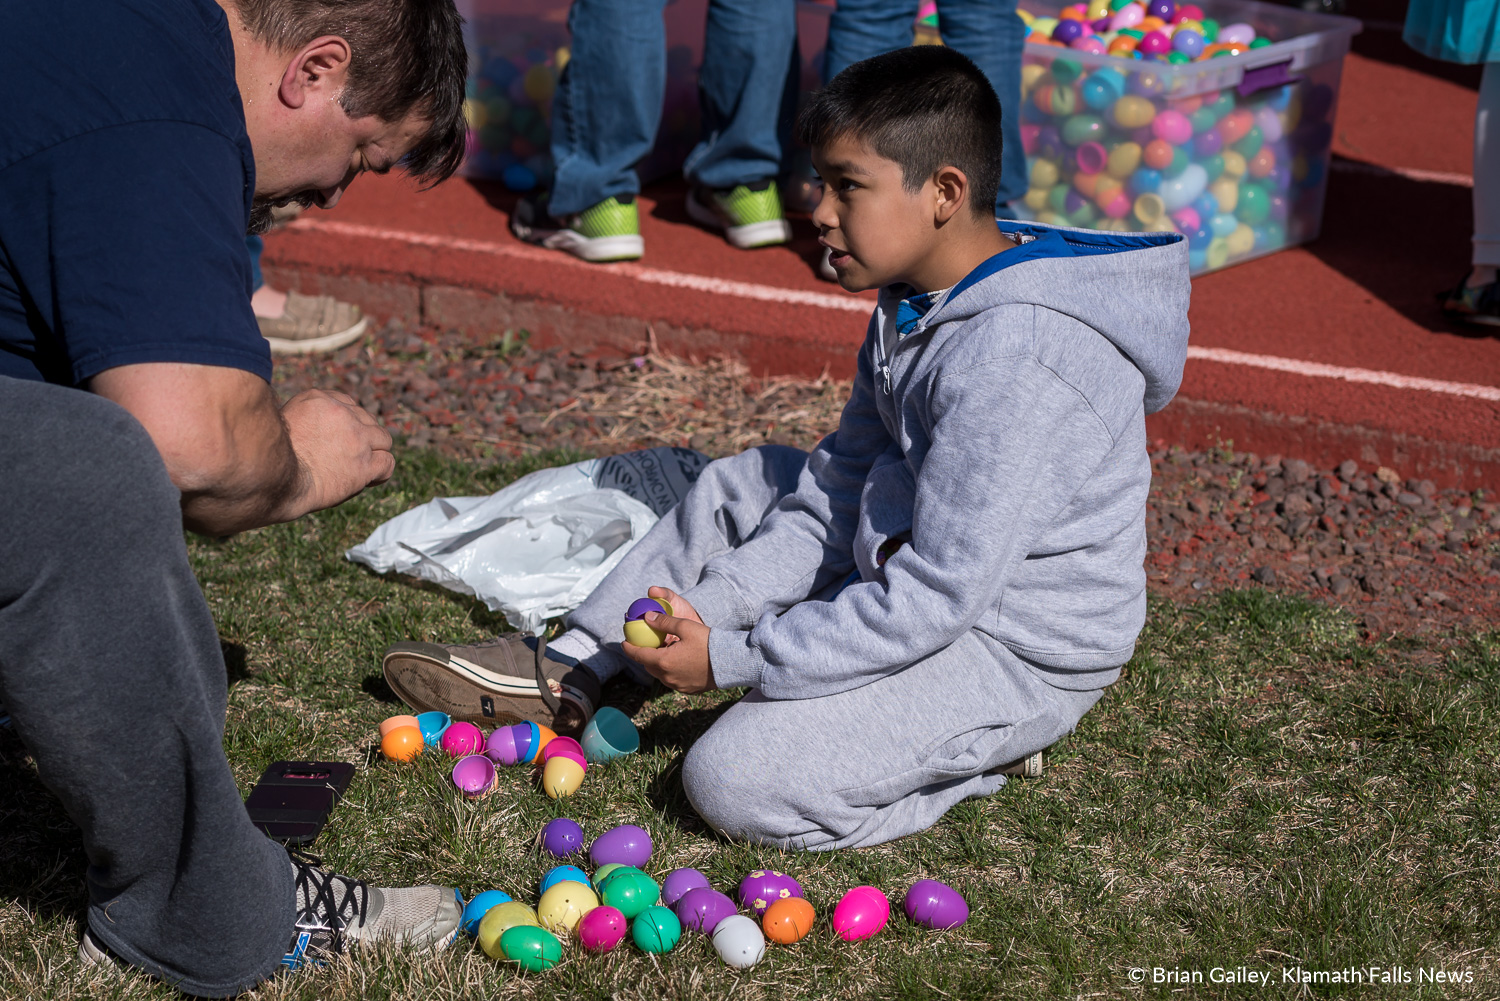 Don't blink or you will miss it. Easter Egg Scramble hosted at Oregon Tech. March 31, 2018 (Brian Gailey)